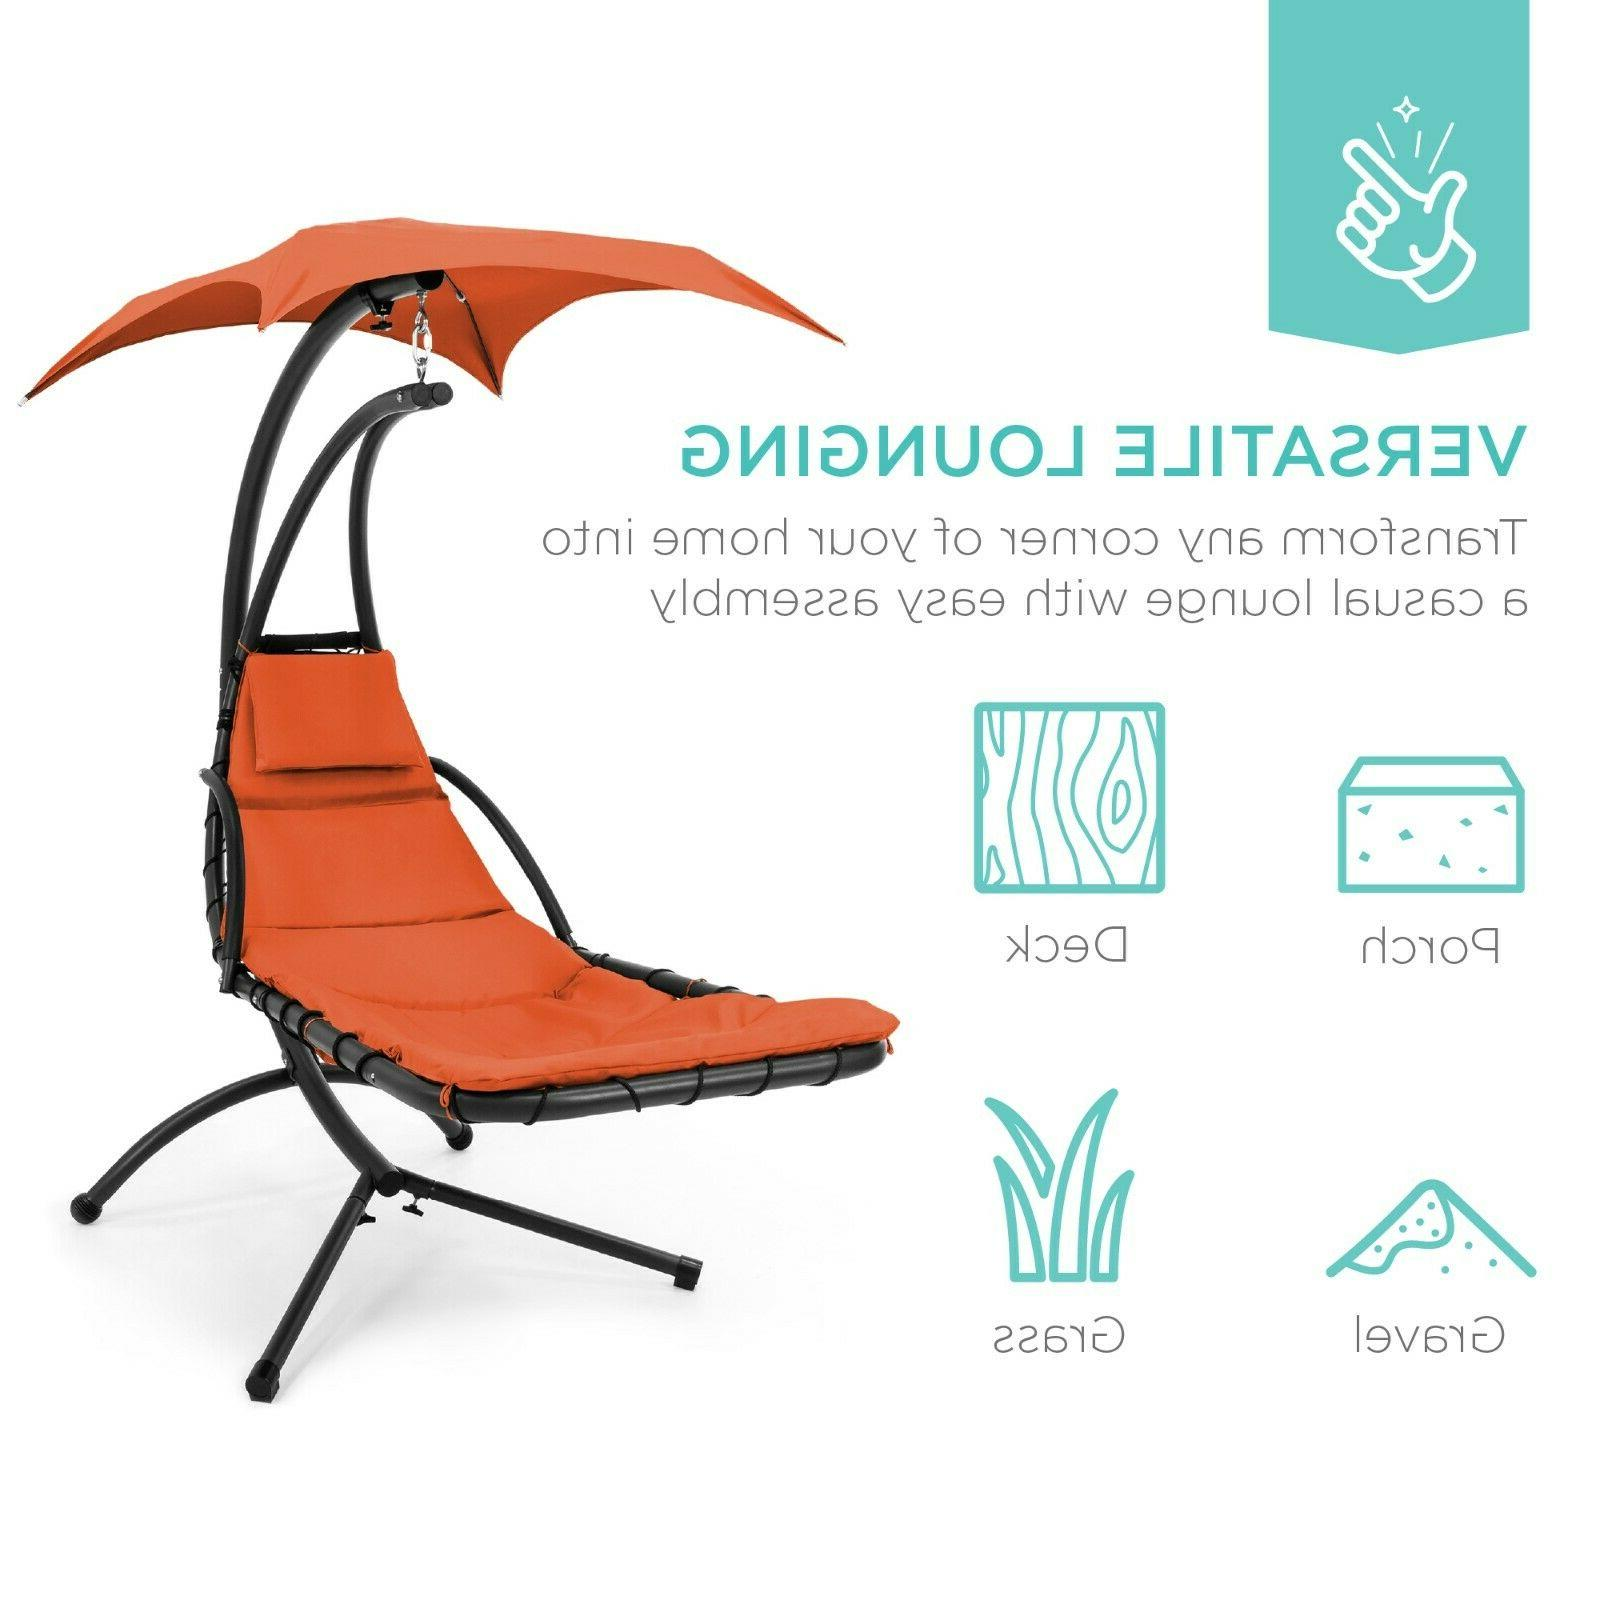 Chaise Chair Swing with Removable Canopy